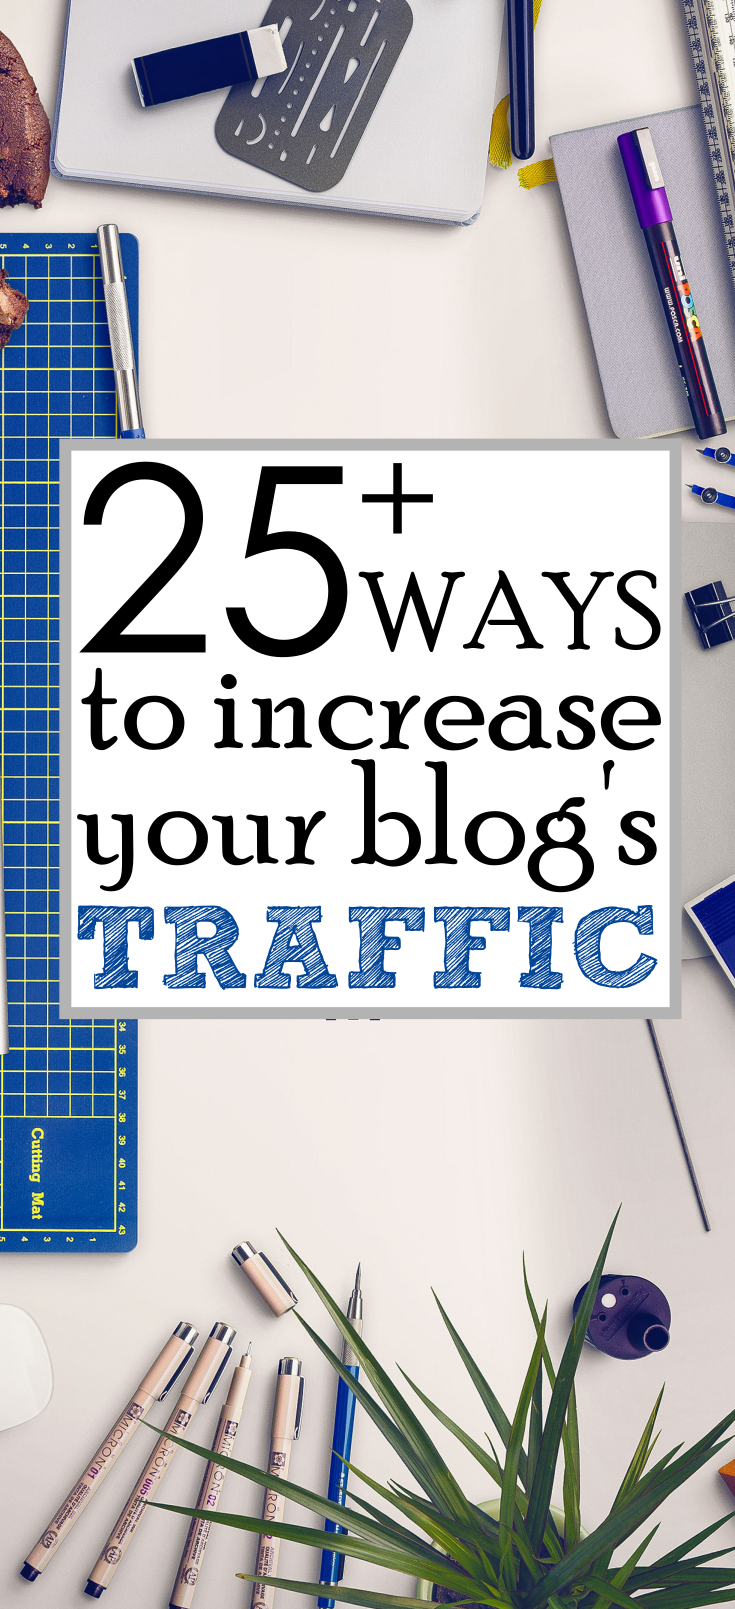 25-ways-to-increase-your-blog-traffic